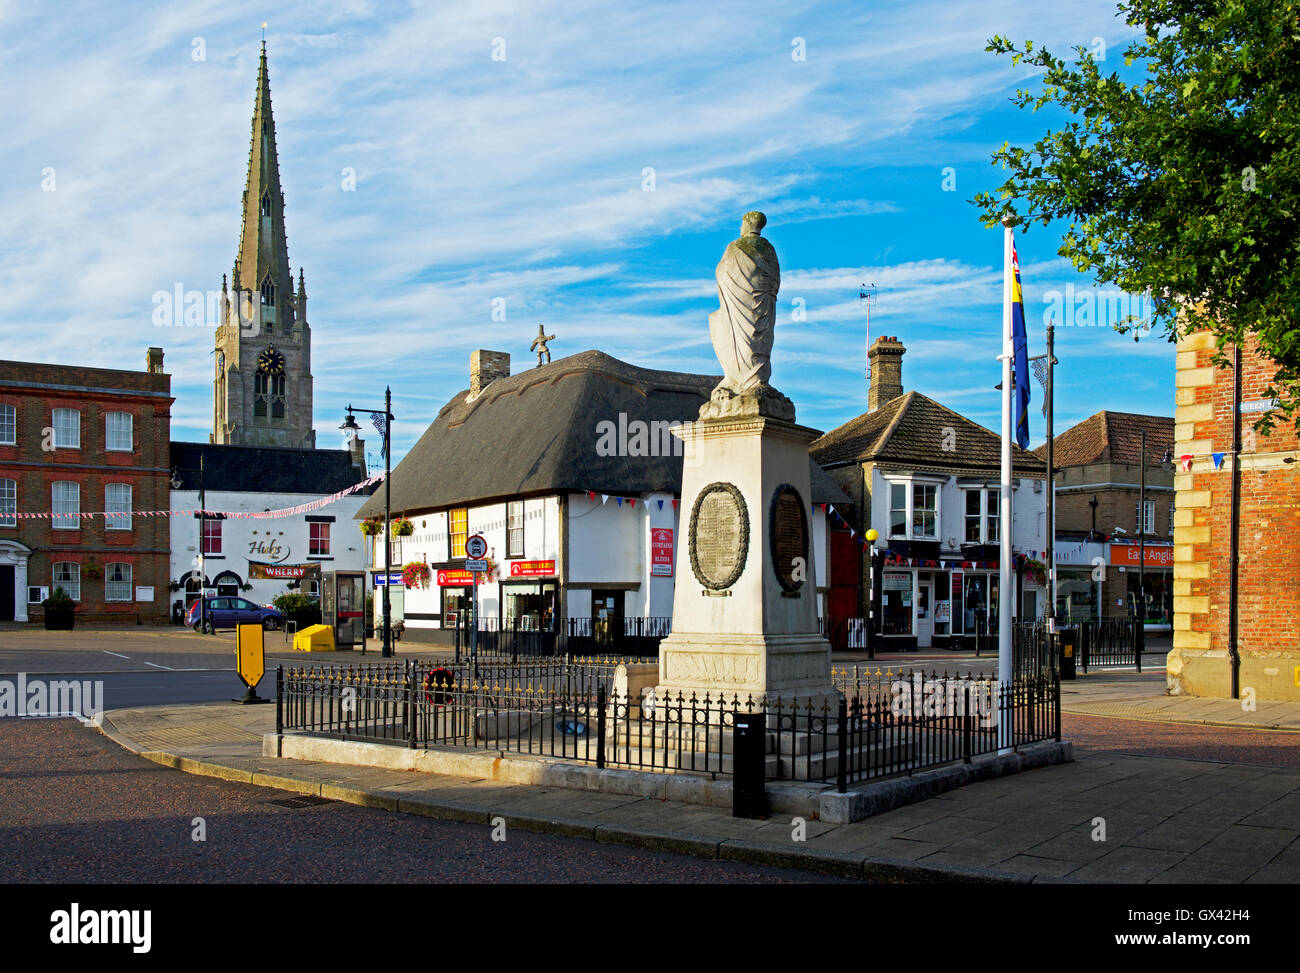 Whittlesea, Cambridgeshire, England UK - Stock Image